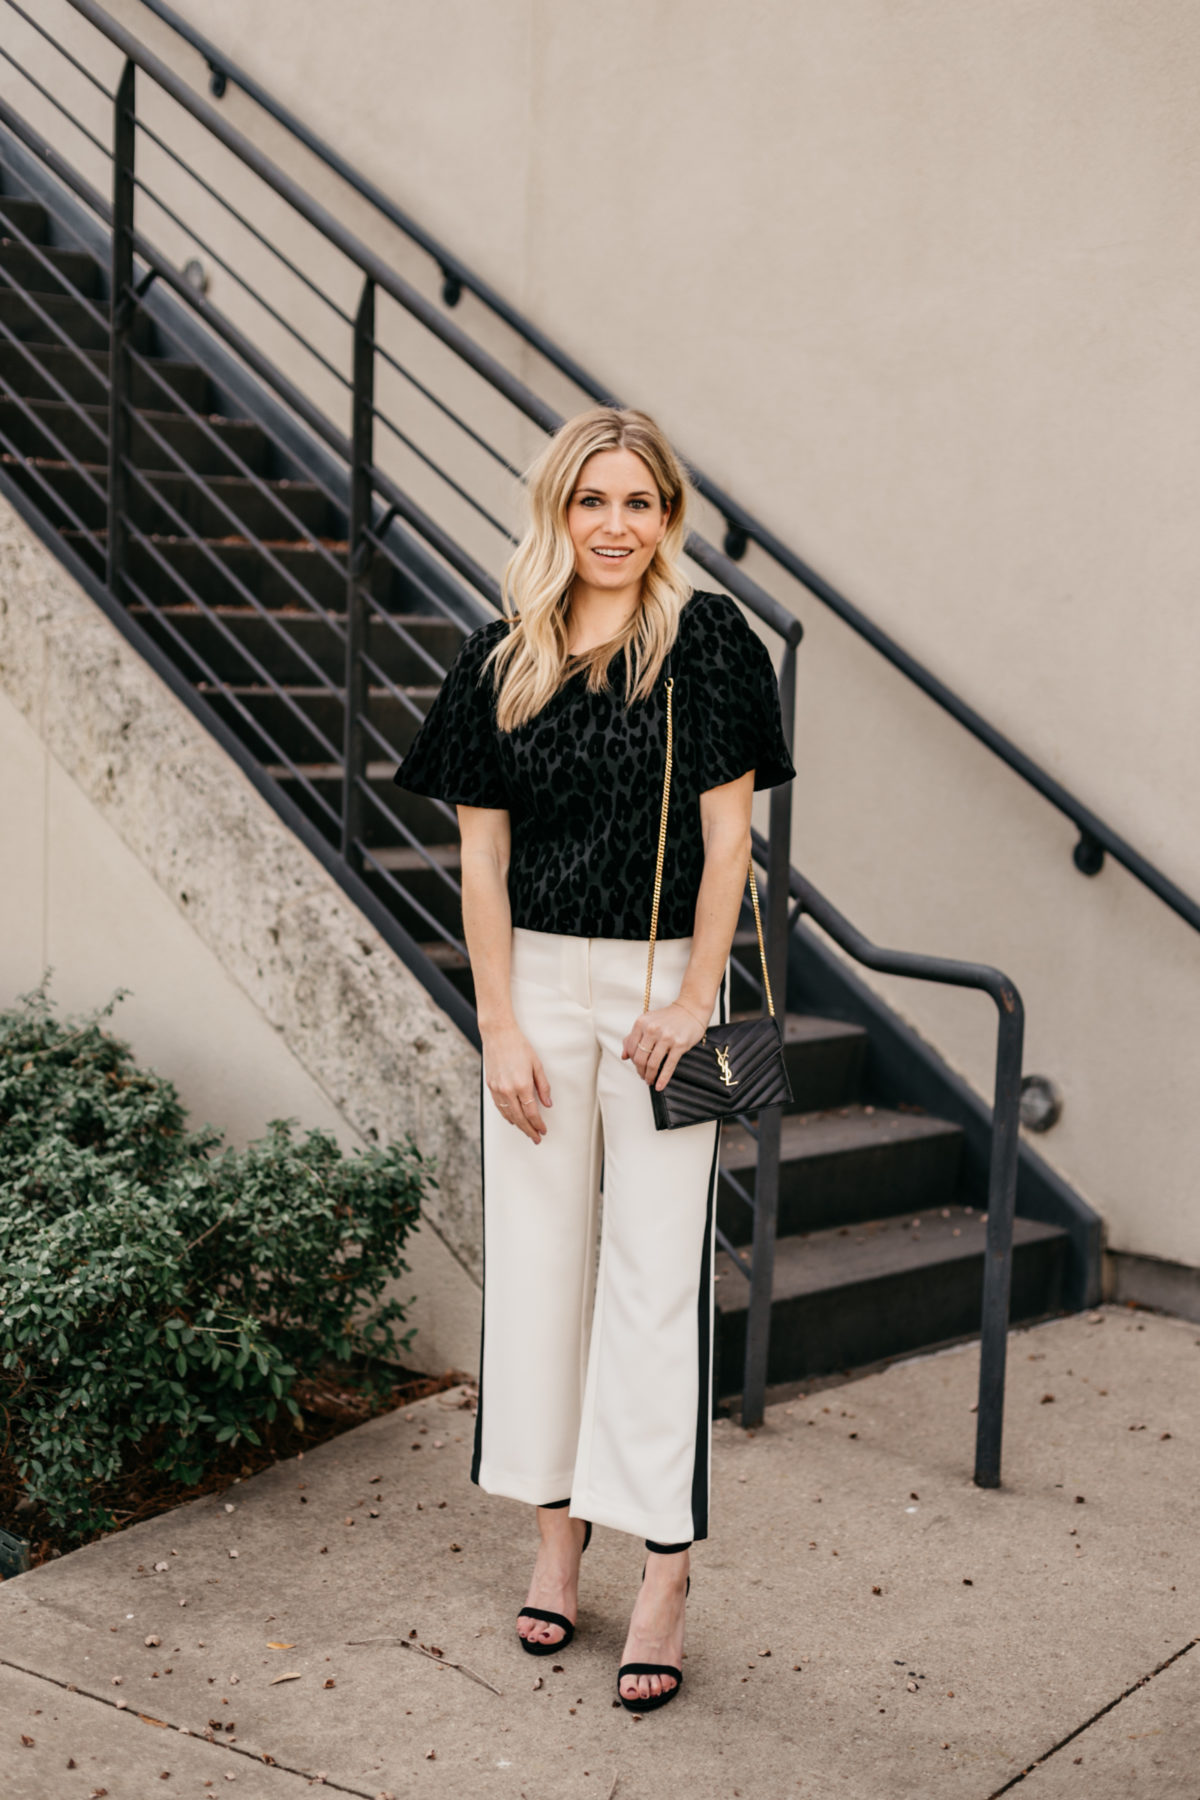 OUTFIT 3  White Wide Leg Stripe Pants // Black Short Sleeve Blouse // Black and Gold Crossbody Clutch // Black Strappy Heels